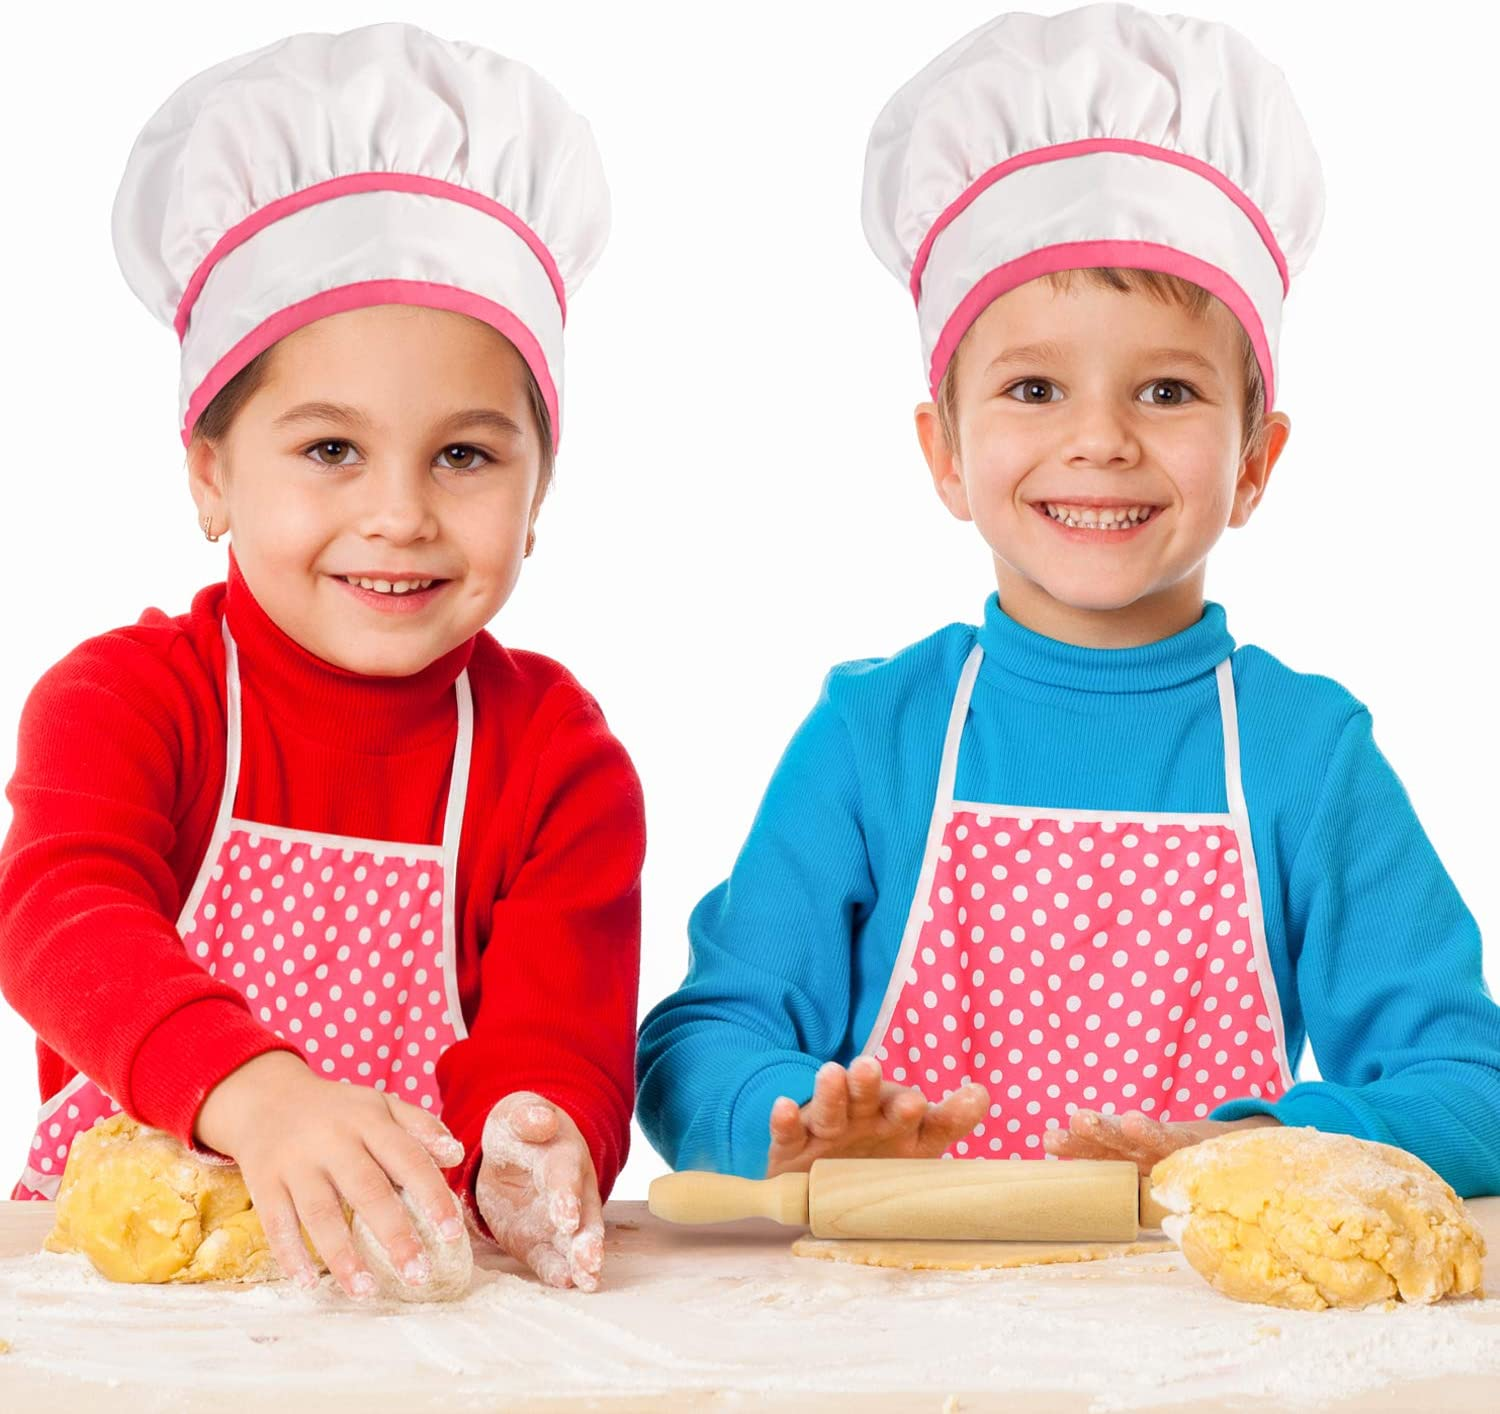 KKONES Kids Cooking Baking Set 17Pcs Kids Chef Role Play Costume Set Chef Hat and Matching Pink Apron Children Dress up Pretend Gift for 3 4 5 6 7 8 Year Old Girls Toys